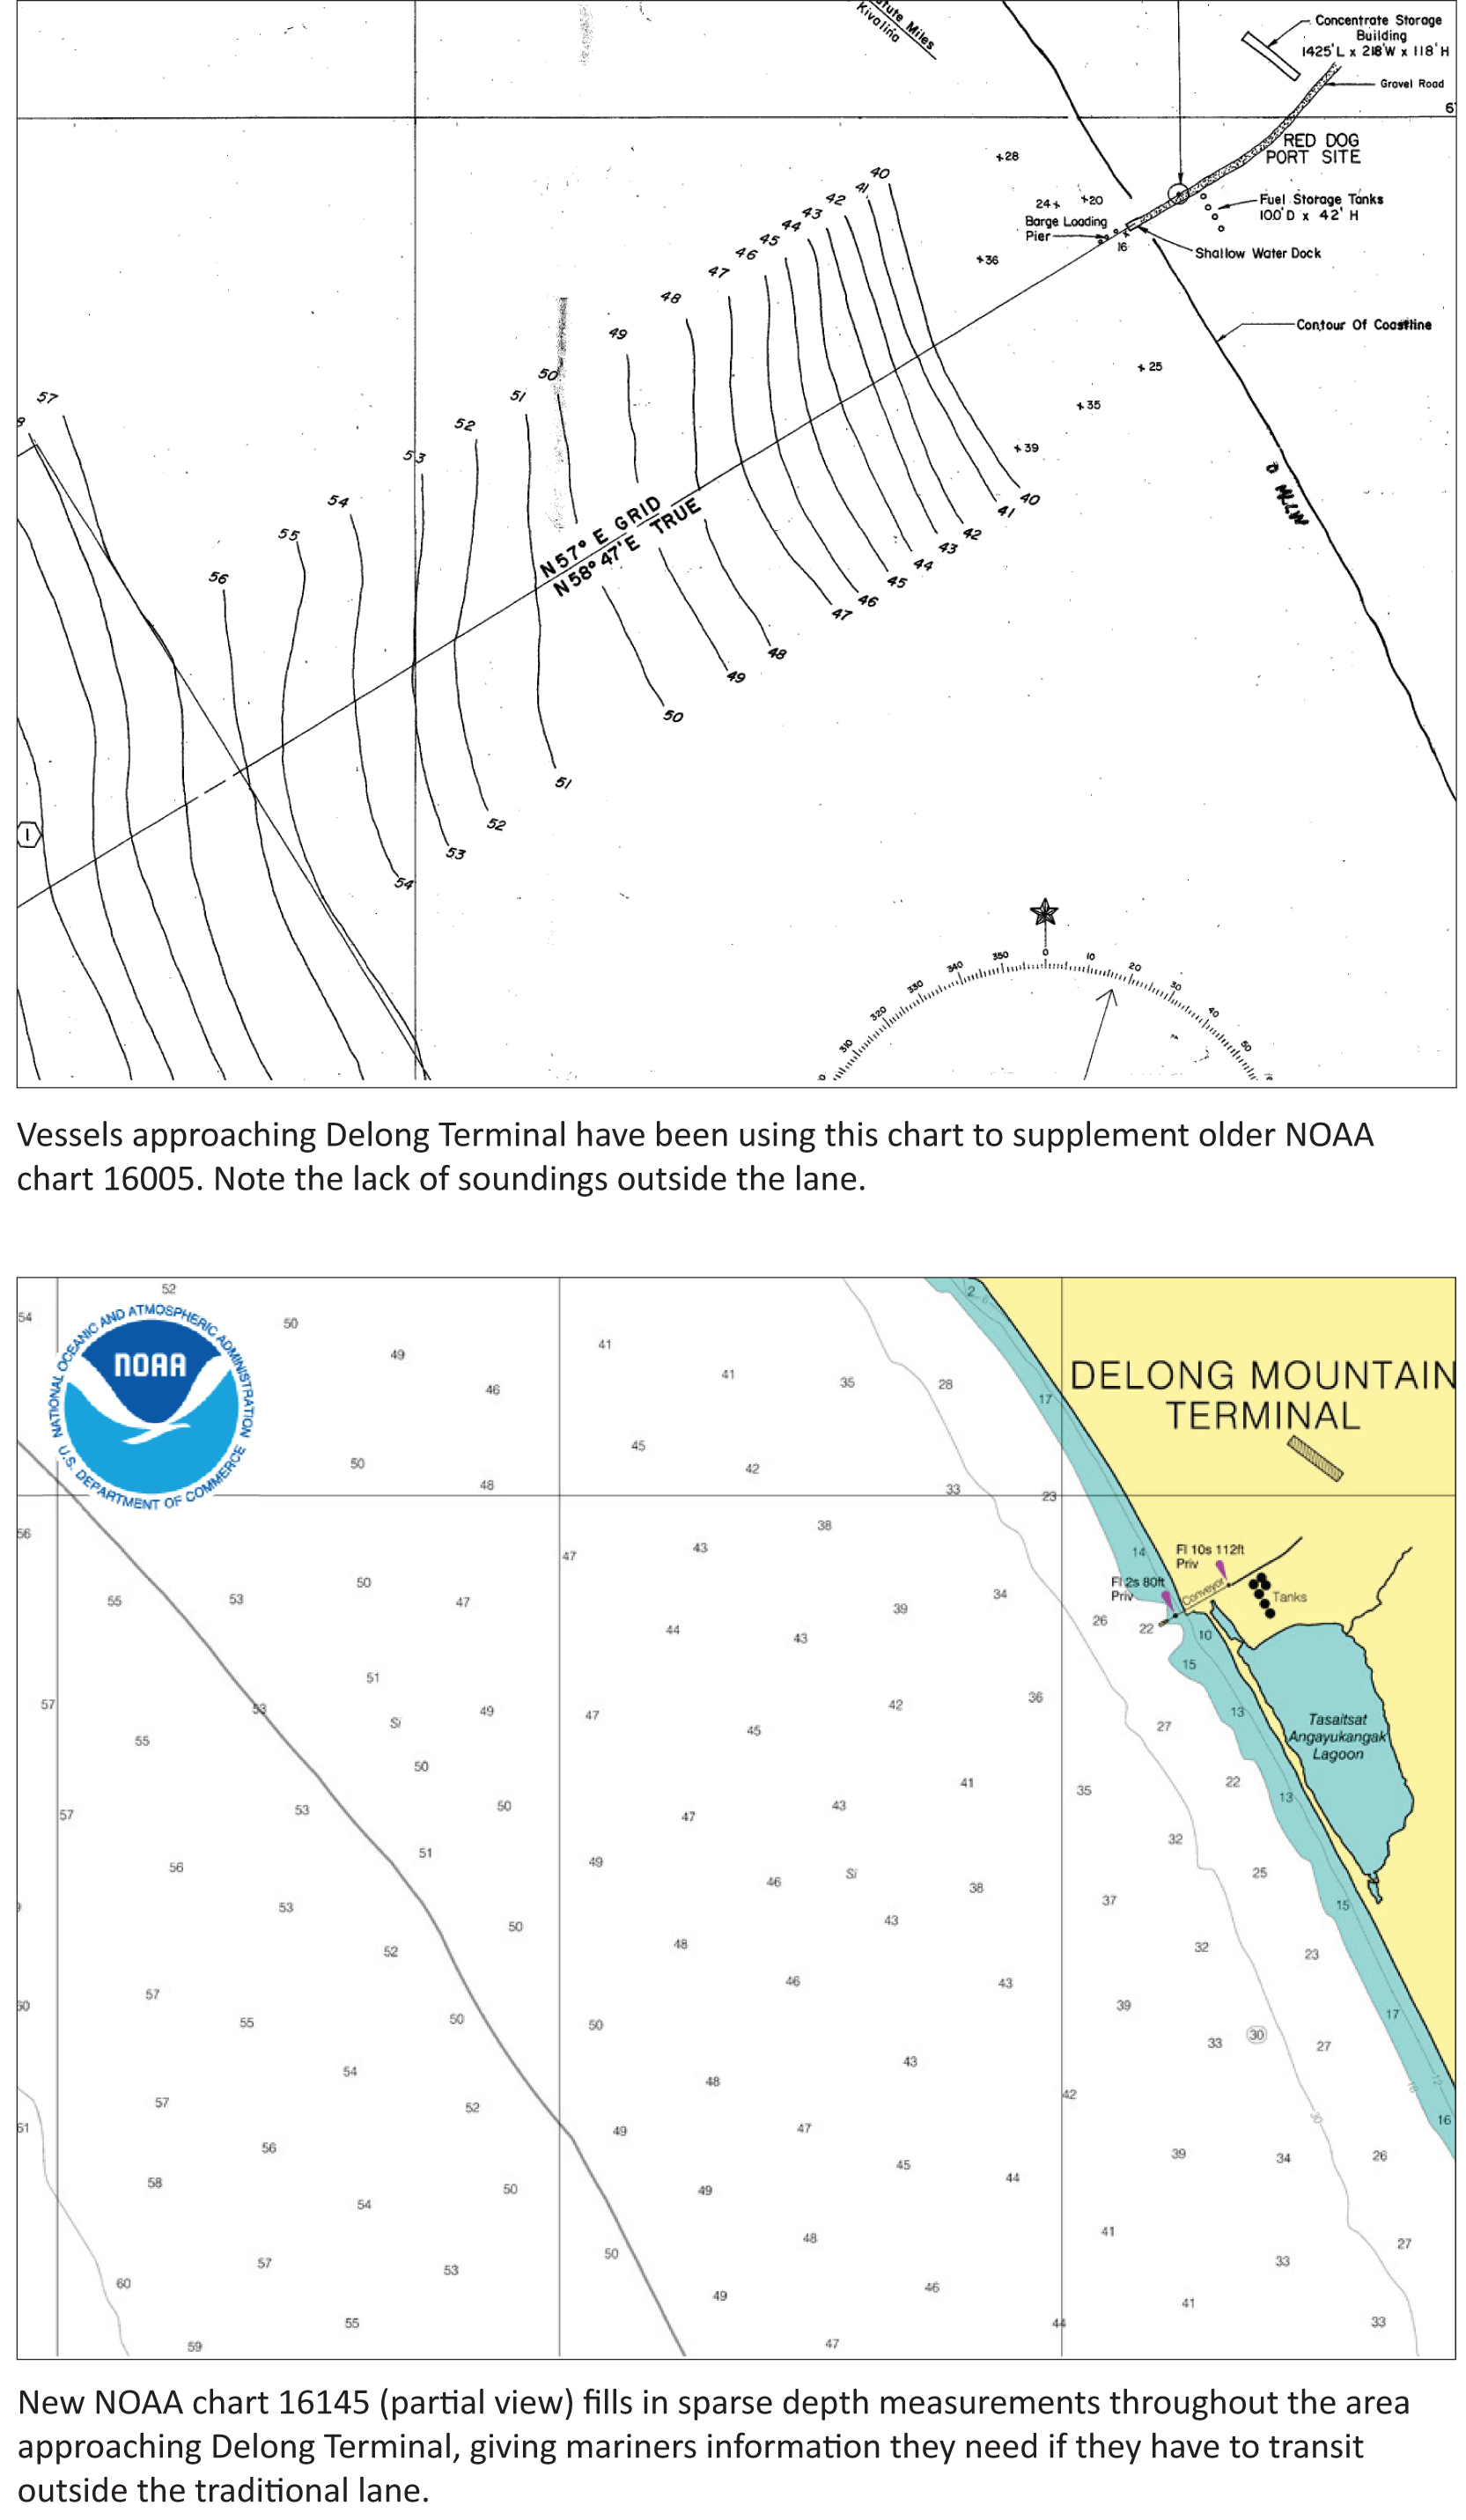 Noaa Issues New Nautical Chart For The Arctic News Updates Diagram Of Mountai 16145 Fills In Historically Sparse Depth Measurements Using Survey Data Recently Acquired Specifically This